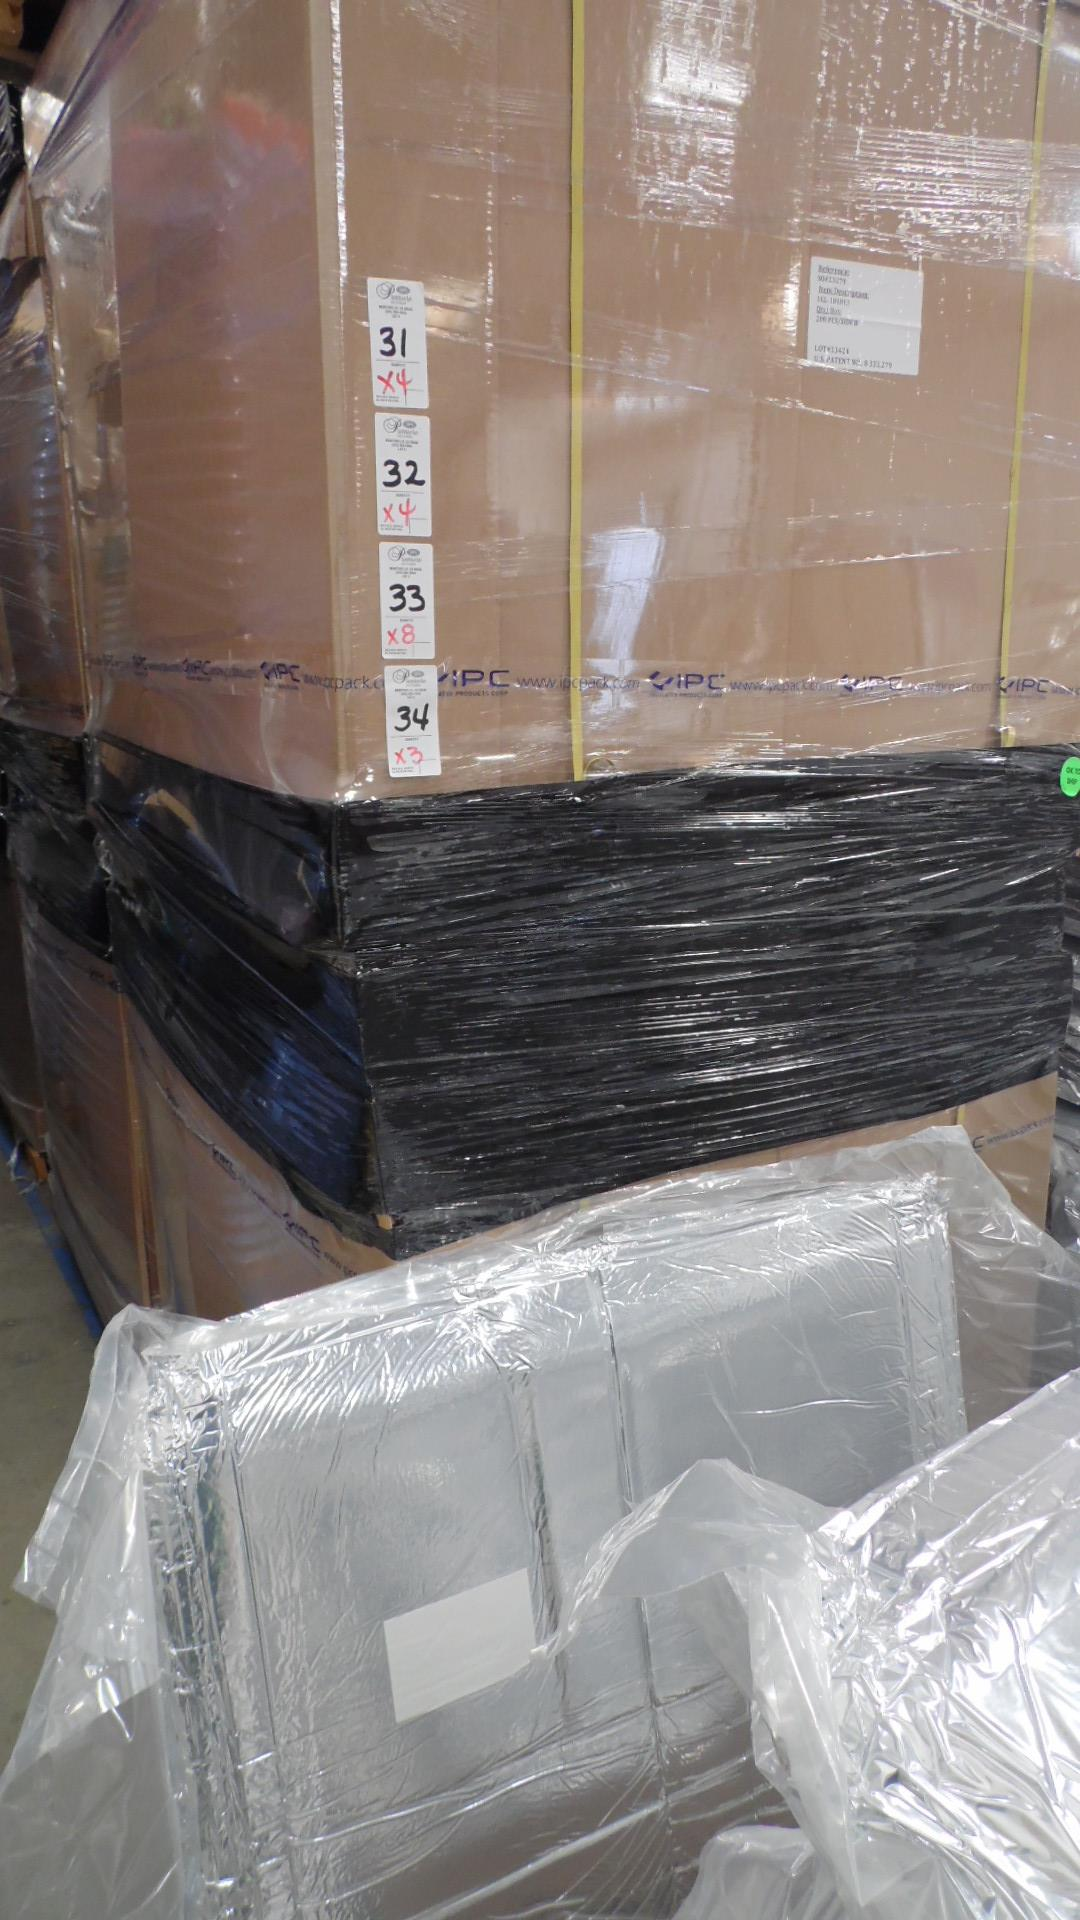 Lot 32 - INSULATED PACKS 15X11X11 (QTY 400)